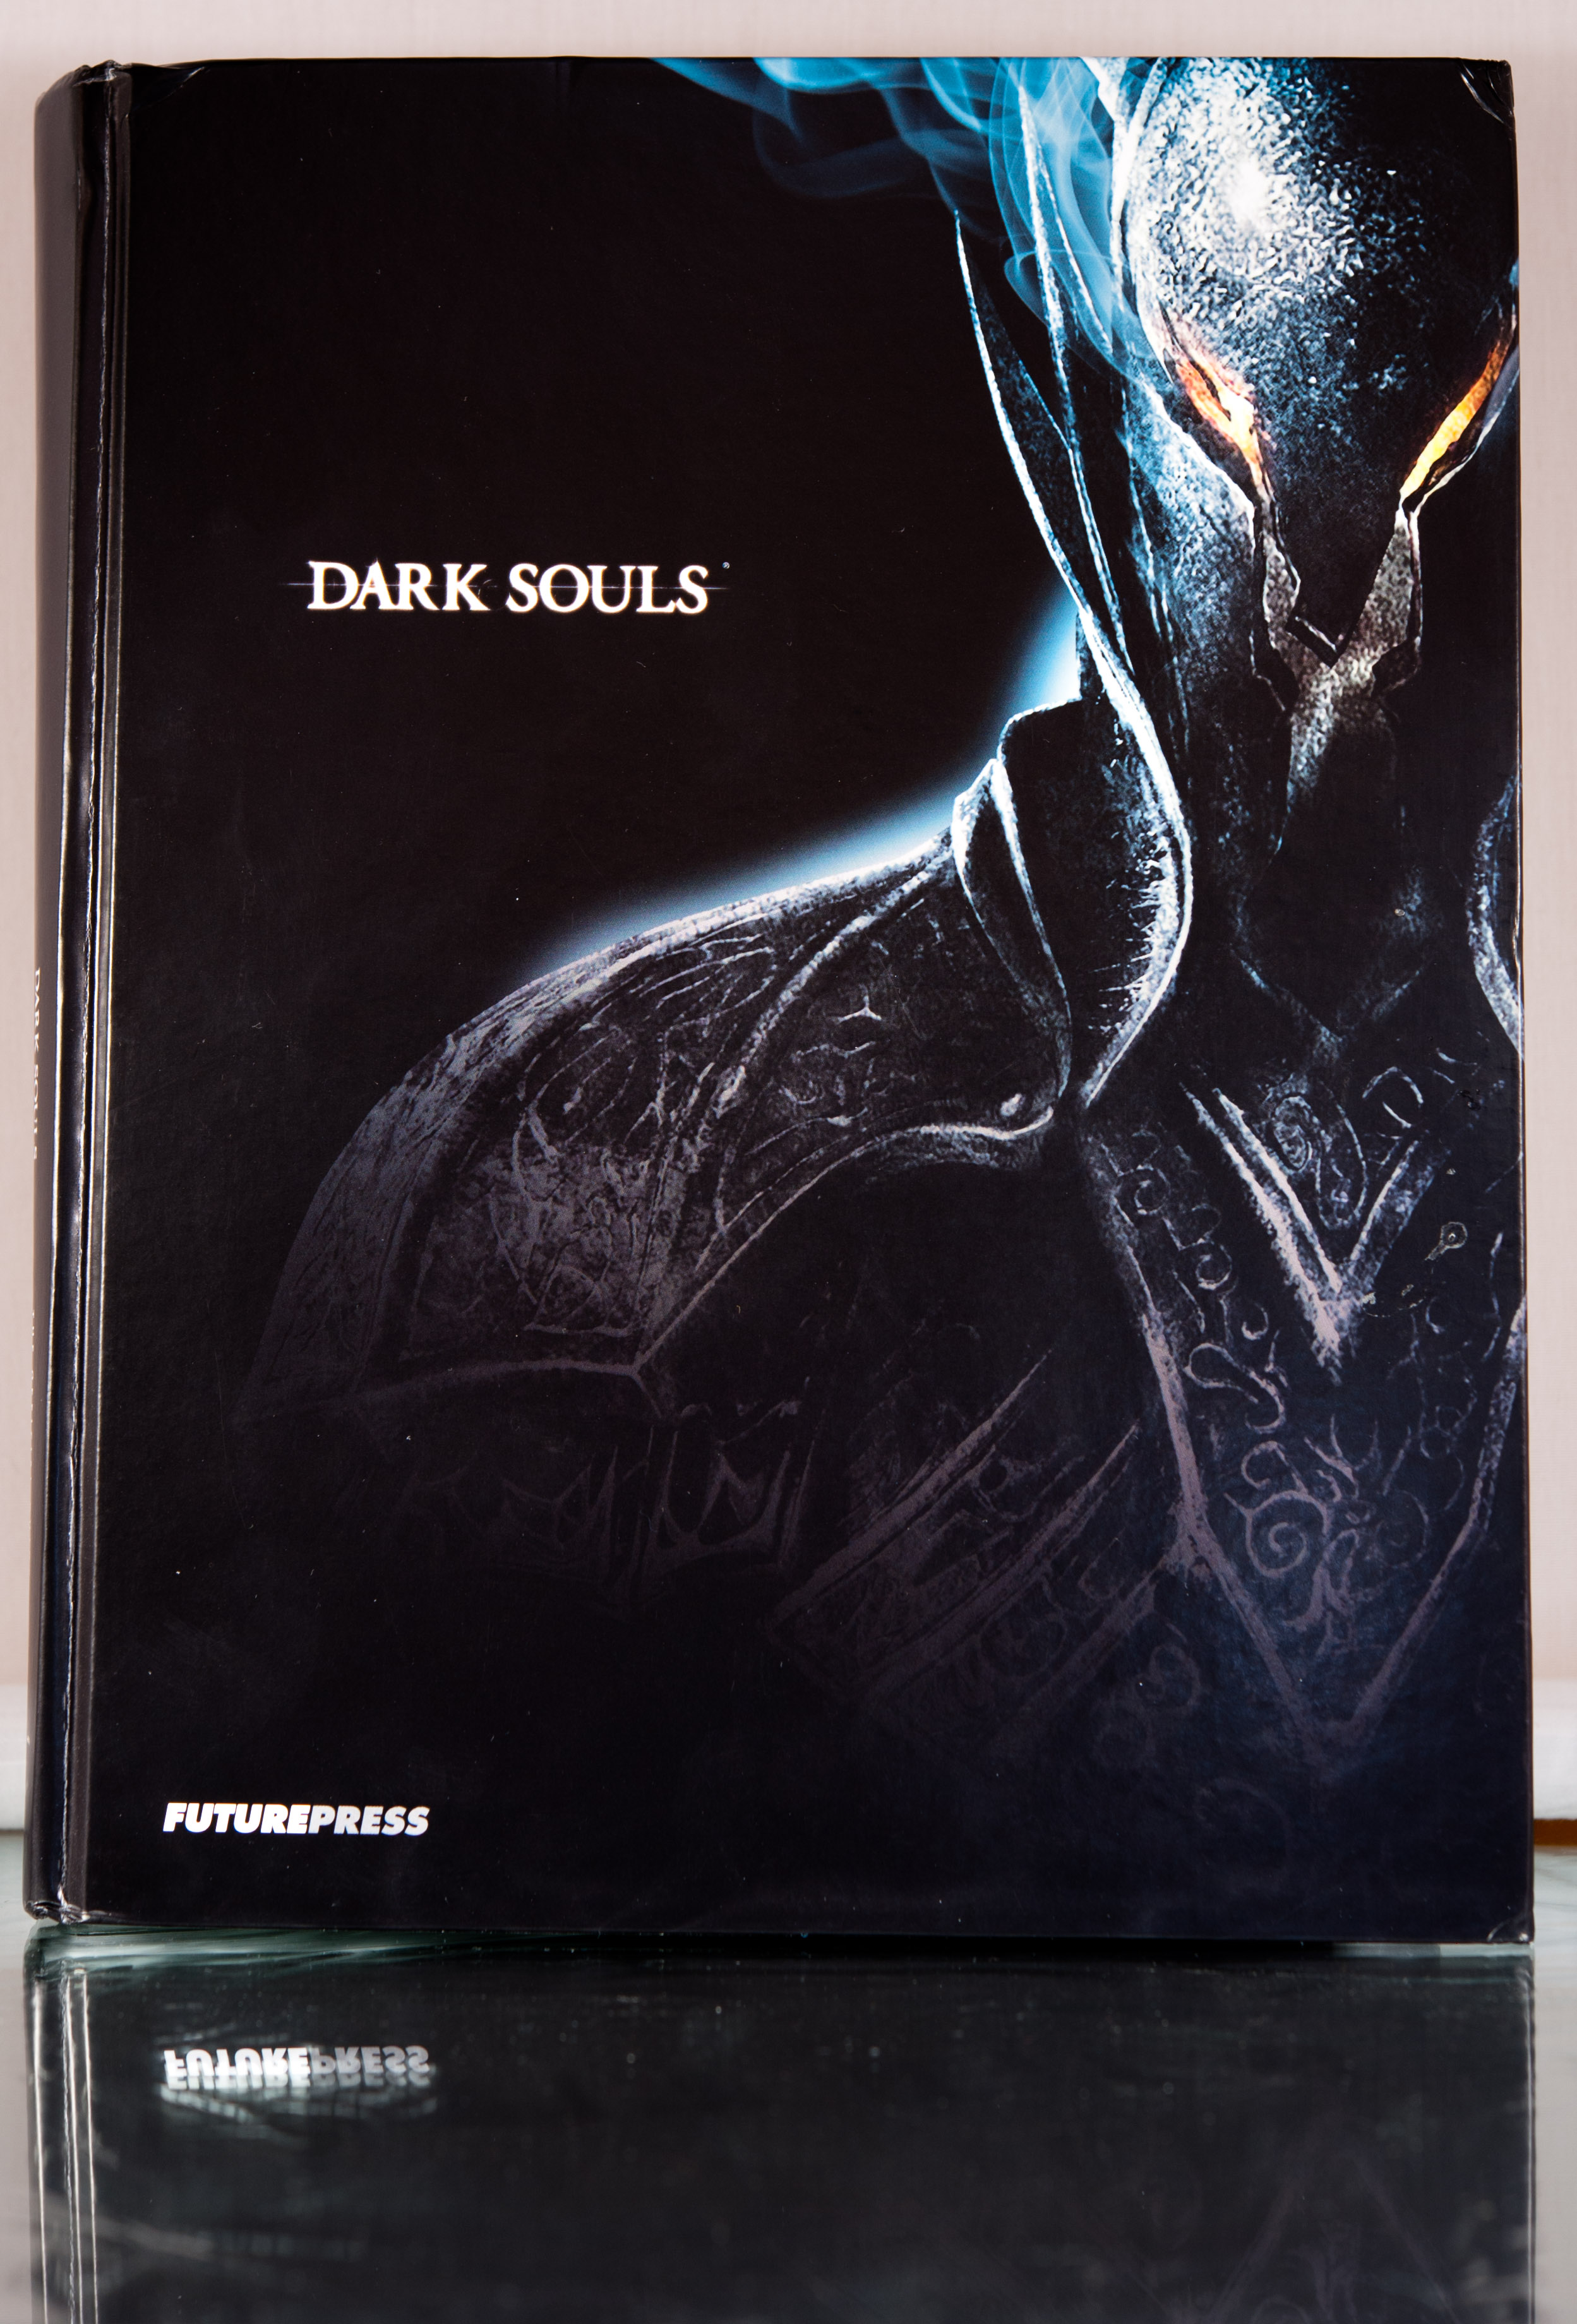 The Dark Souls strategy guide cover